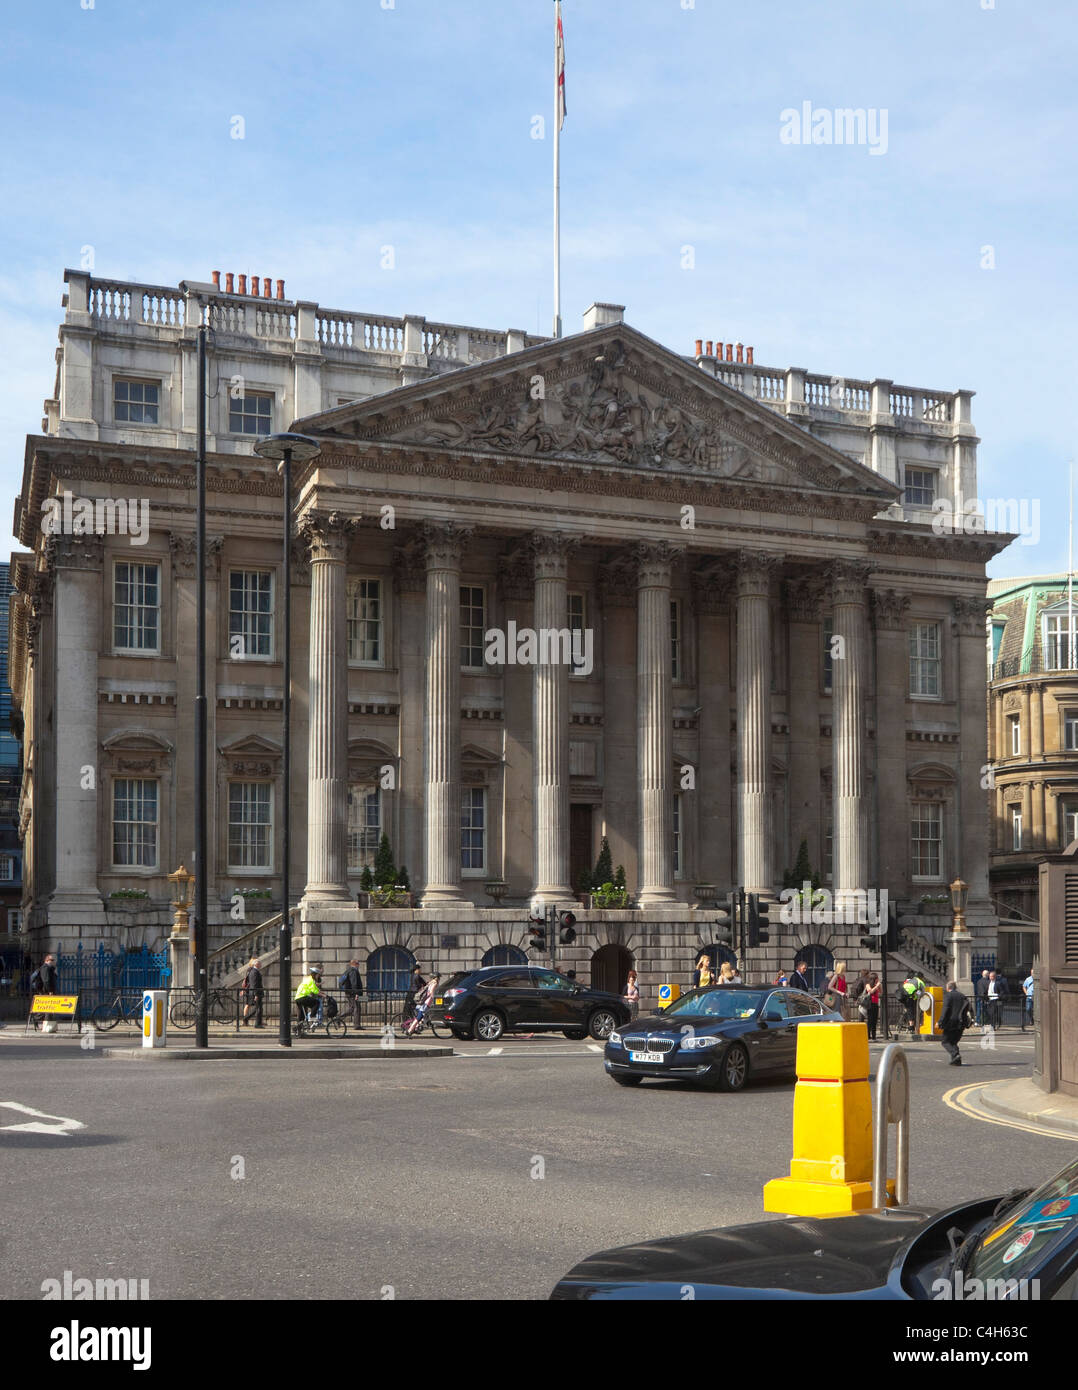 The Mansion House in the City of London - Stock Image